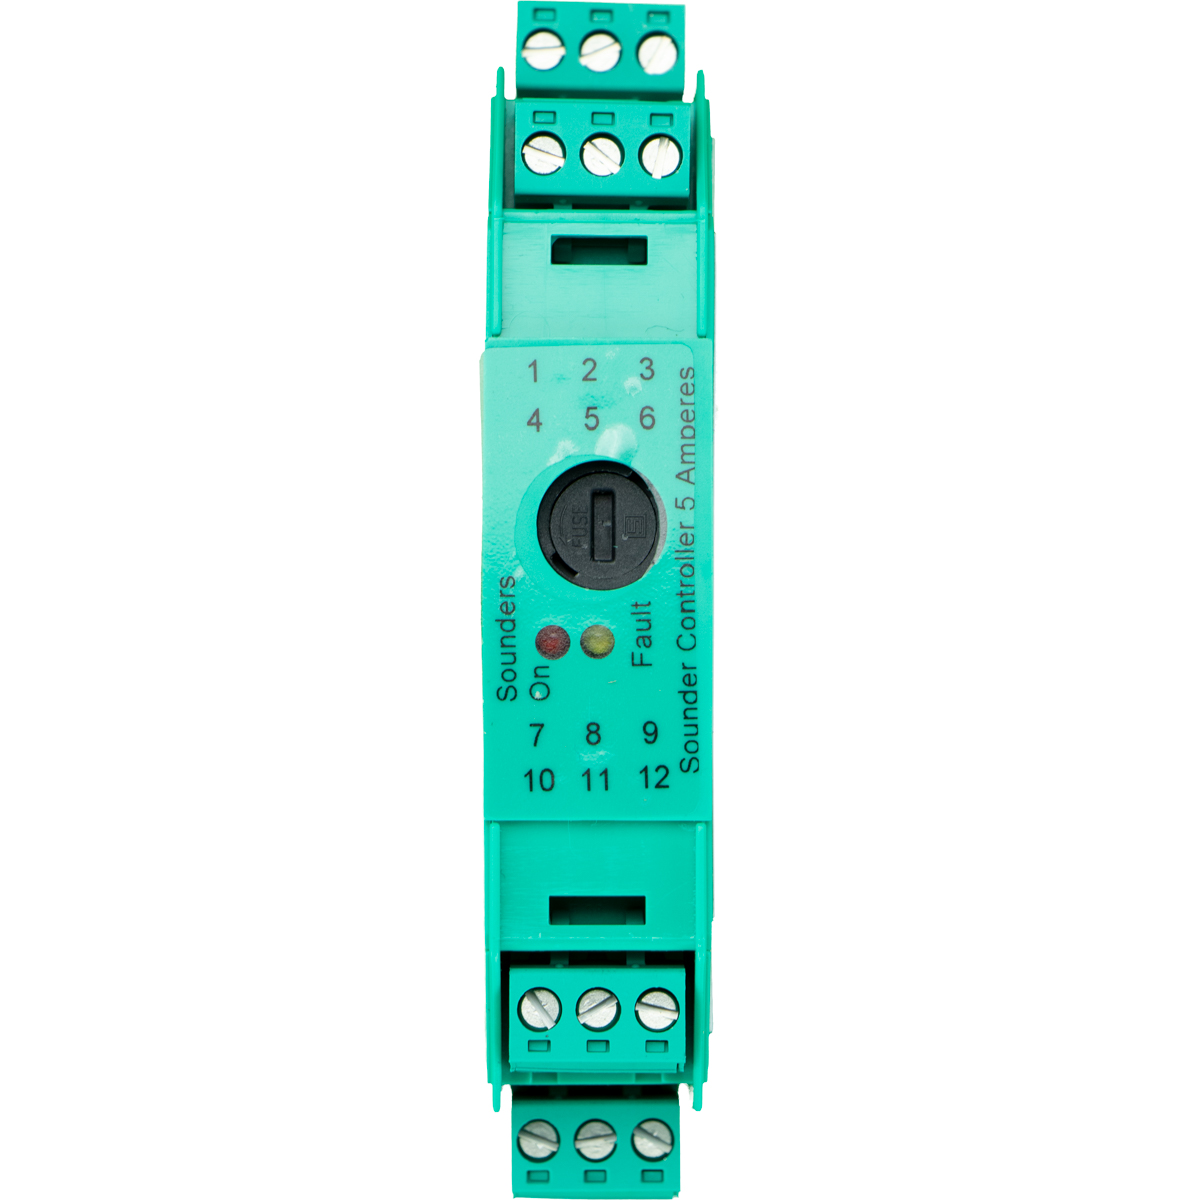 XP95 sounder controller 5A - DIN-rail